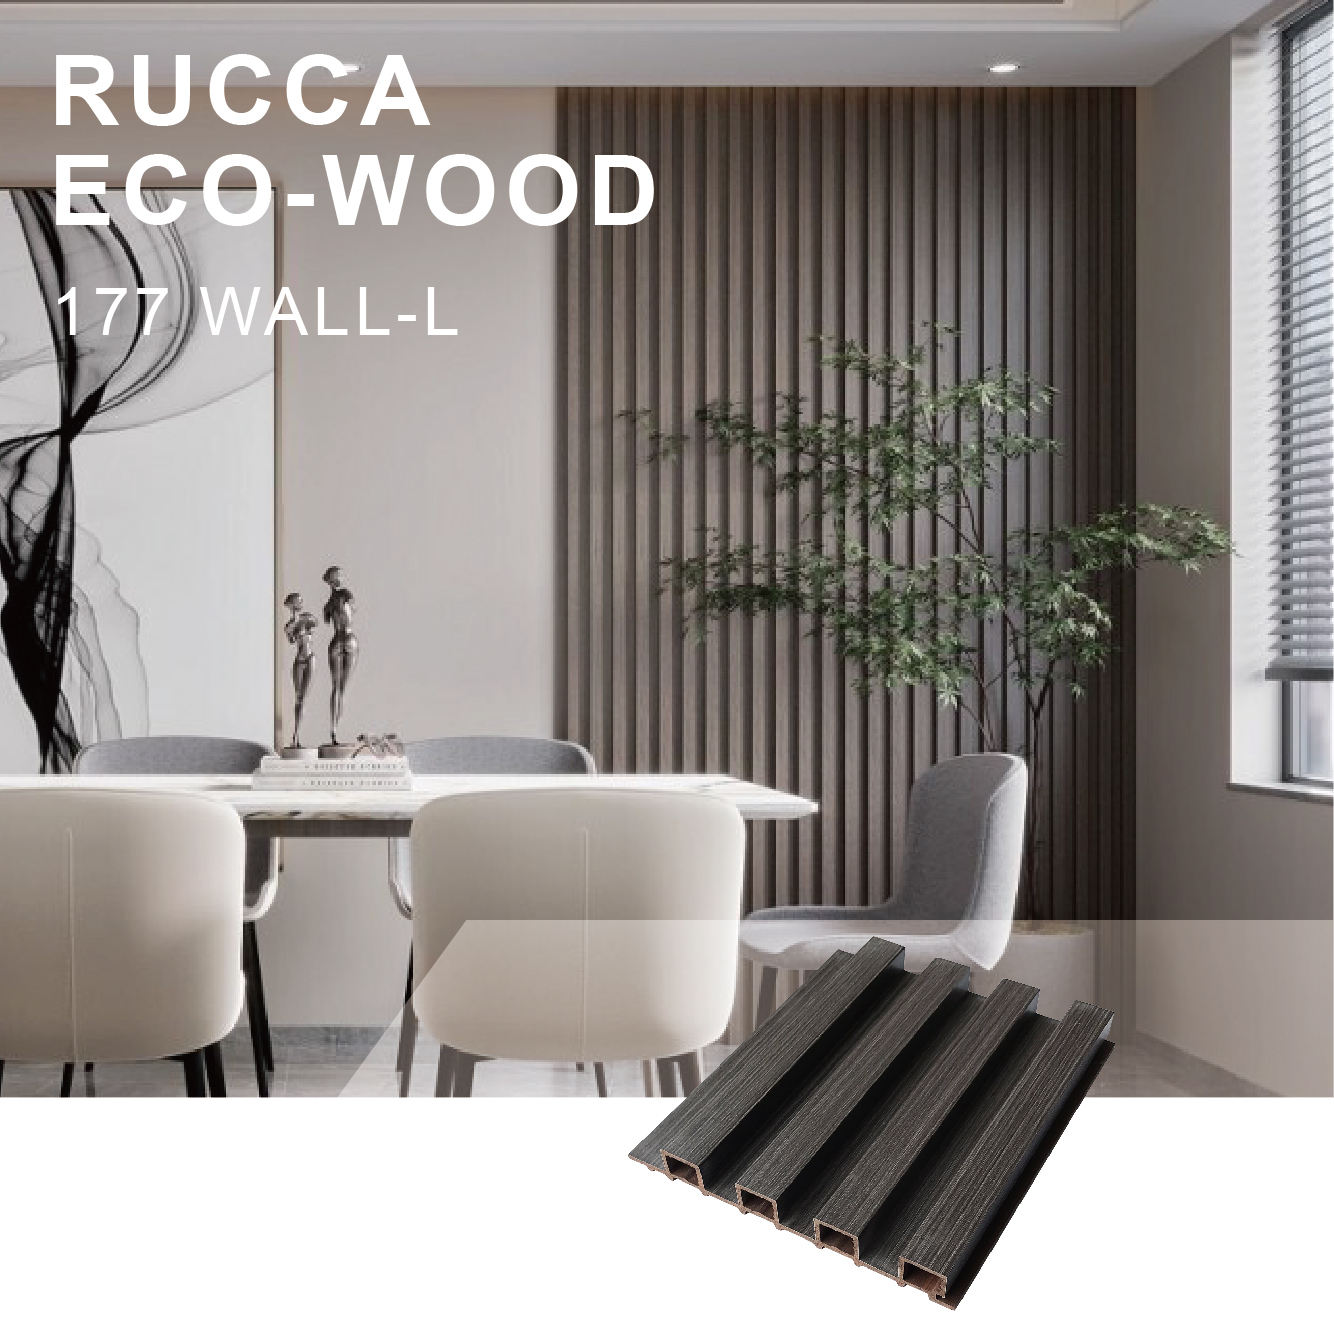 Rucca Frey Color Compact Laminate Decorative Wall Cladding 177x21.5 WPC Interior Panels